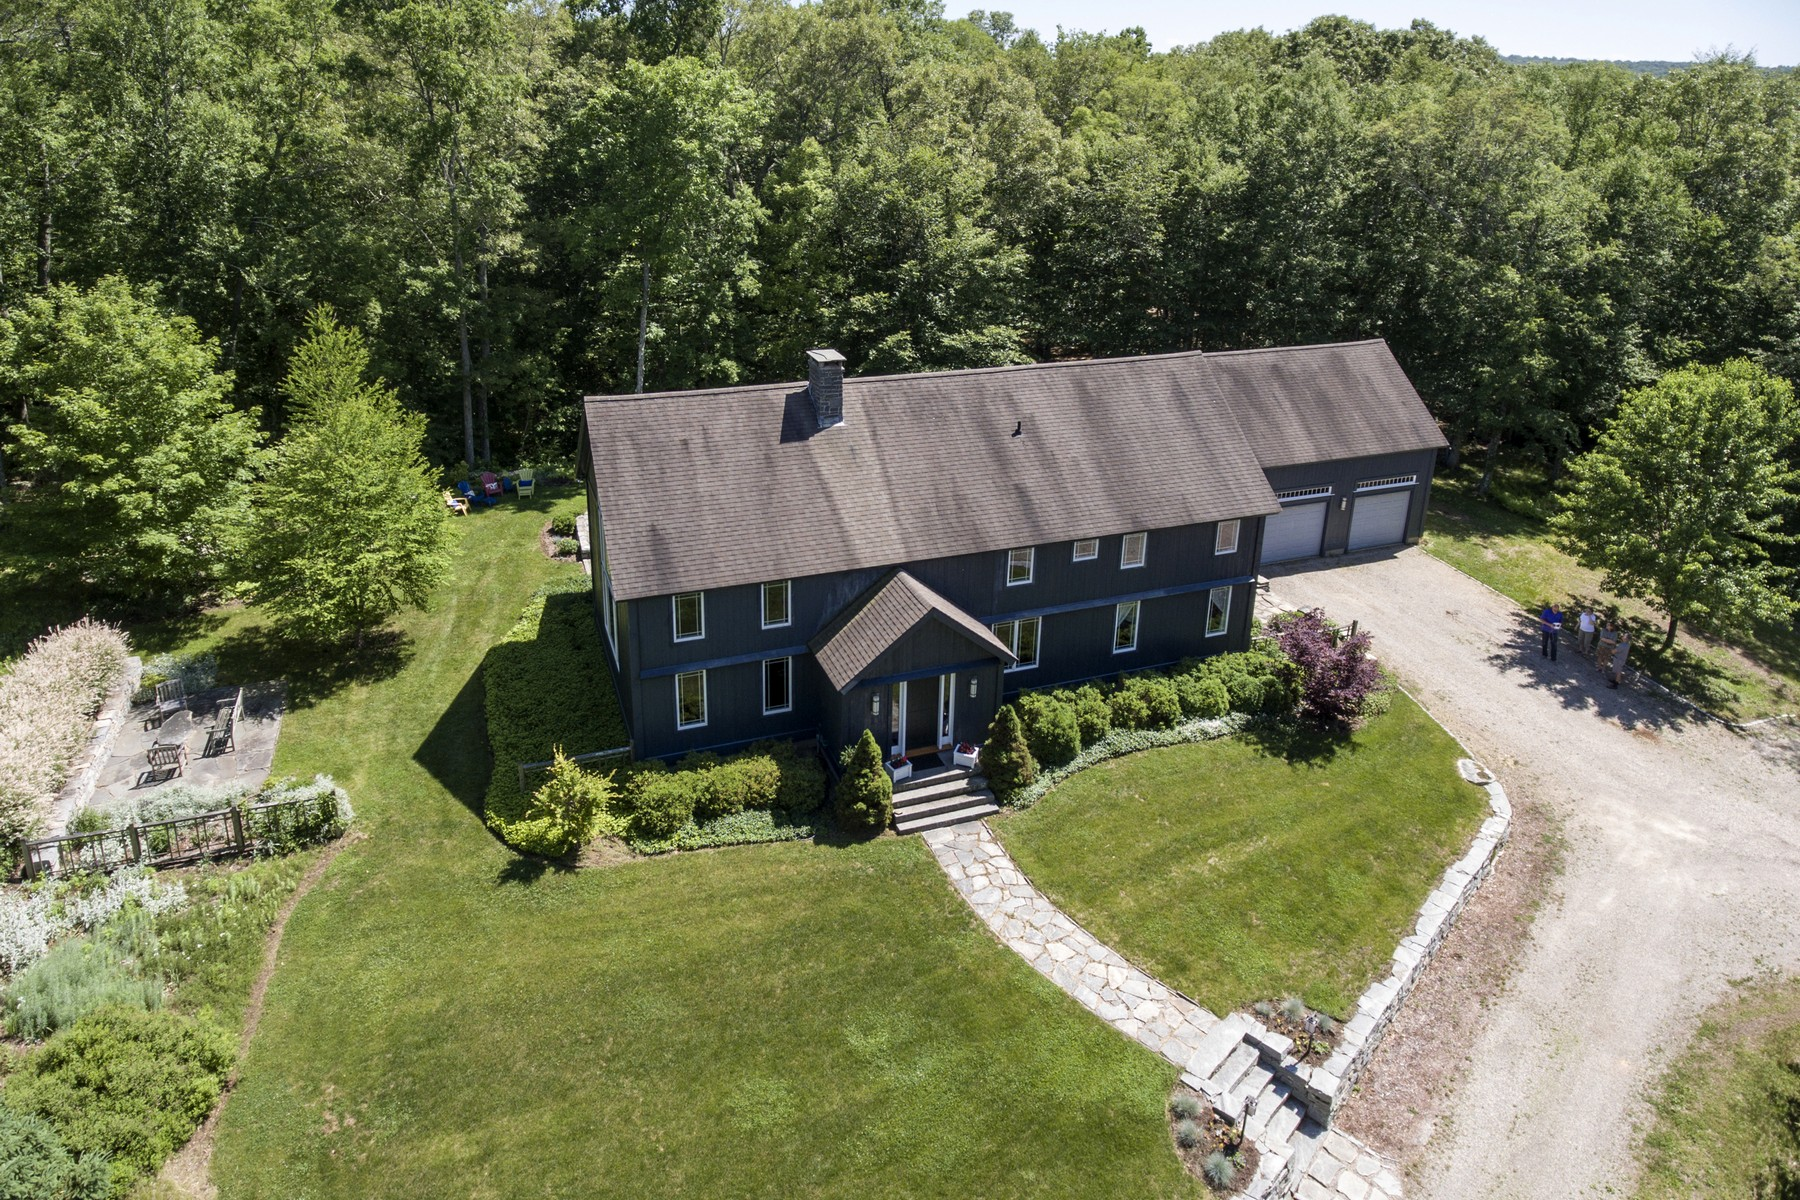 Single Family Home for Sale at Exquisite Post and Beam Yankee Barn 31-2 Baker Lane Lyme, Connecticut, 06371 United States